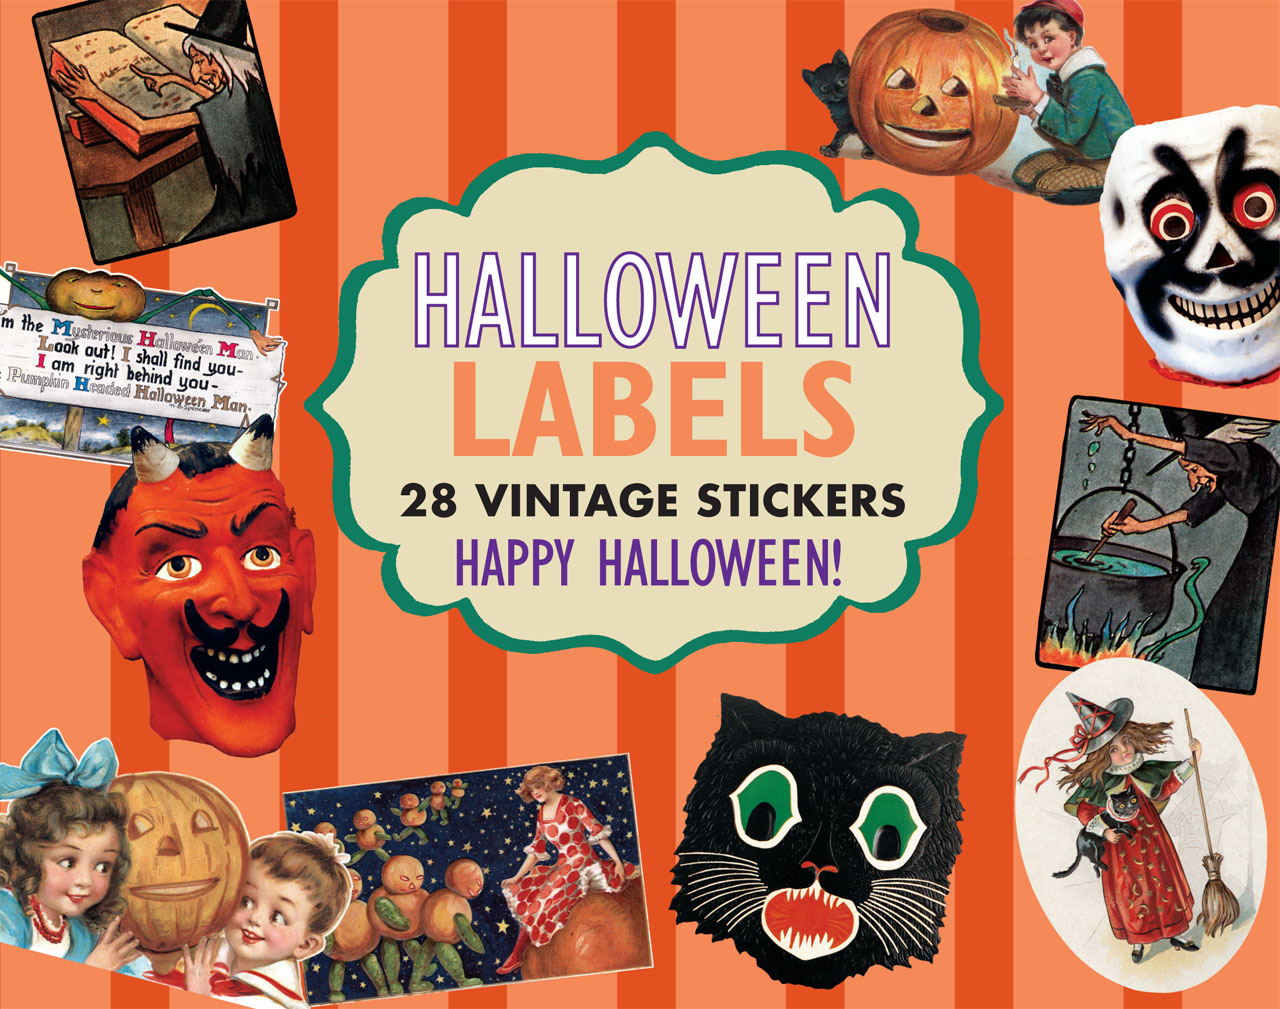 Halloween Sticker Box This box of 28 die-cut stickers, suitable for gifts, invitations, decorations, scrapbooking and general spooky crafting, includes black cats, jack-o-lanterns, witches, parties, costumes, apple bobbing, trick-or-treating, and more. Our sources are as varied as our subjectschildren's books, magazine illustrations and covers, calendar art, scraps, decorations, posters, etc.